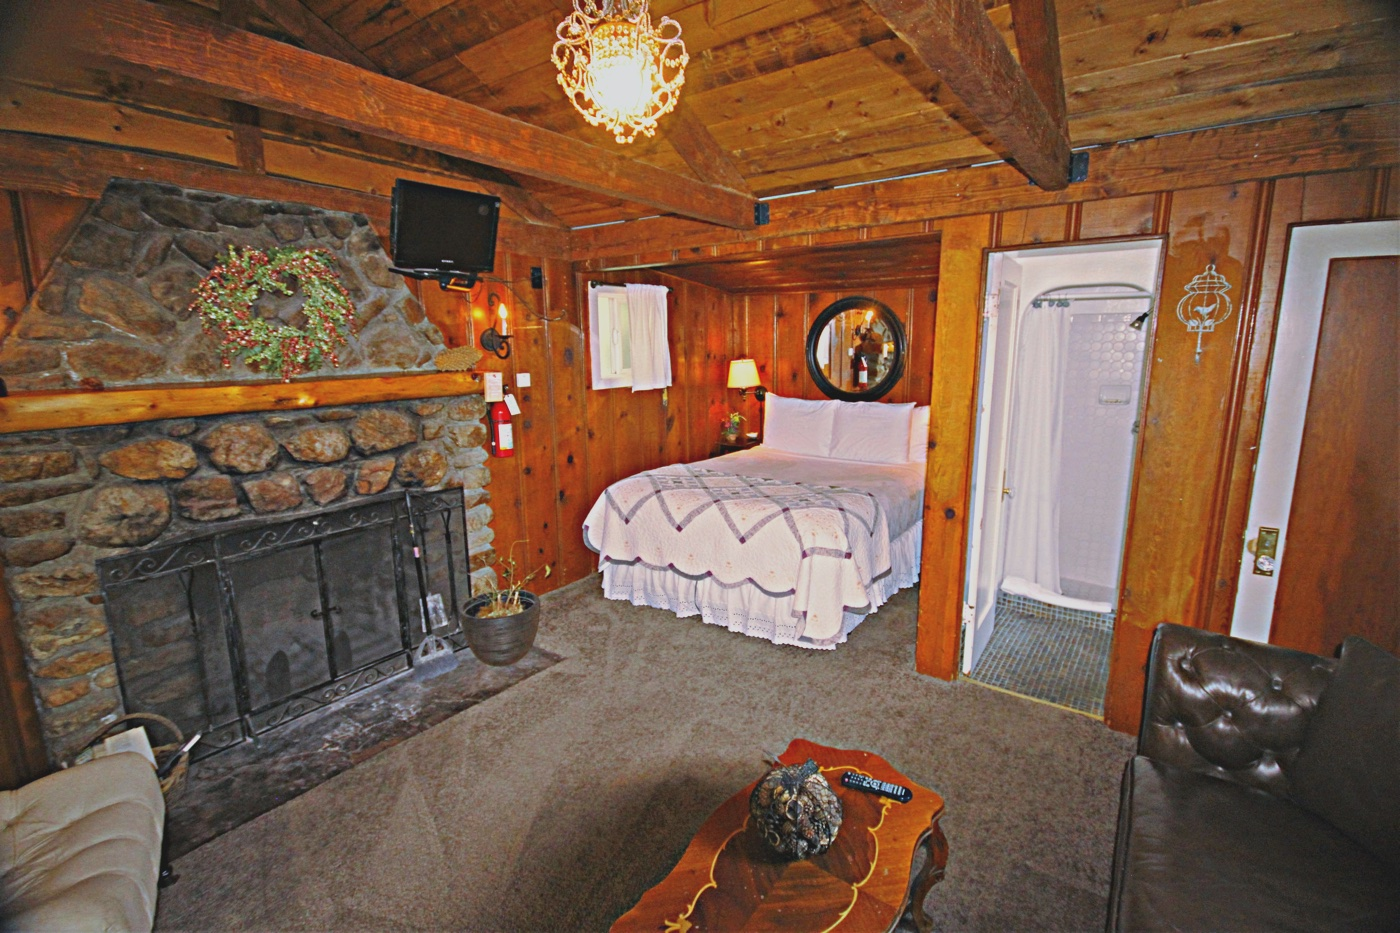 Cabin #8   One Room Cabin, Queen Size Bed (close To Music Stage U0026 Patio)  1Sun, Mon, Tues, Wed, Thu, $125 Per Night Night Fri , Sat $145 Per Night